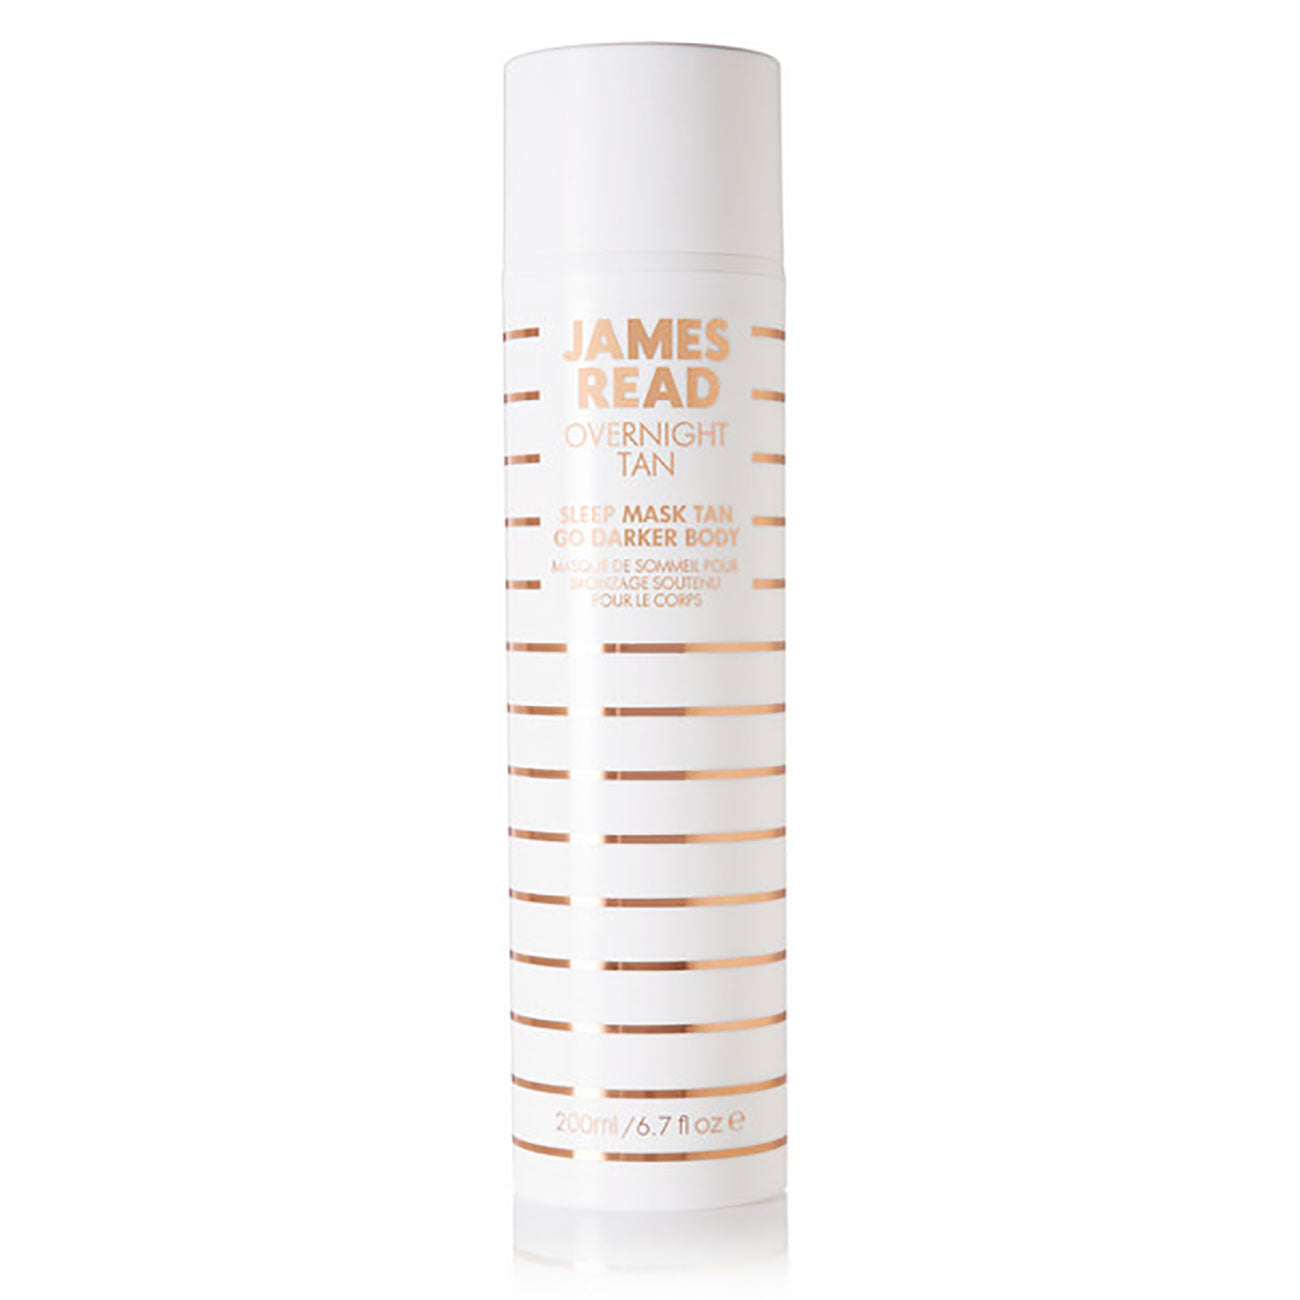 James Read Sleep Mask Tan Body Go Darker 200ml